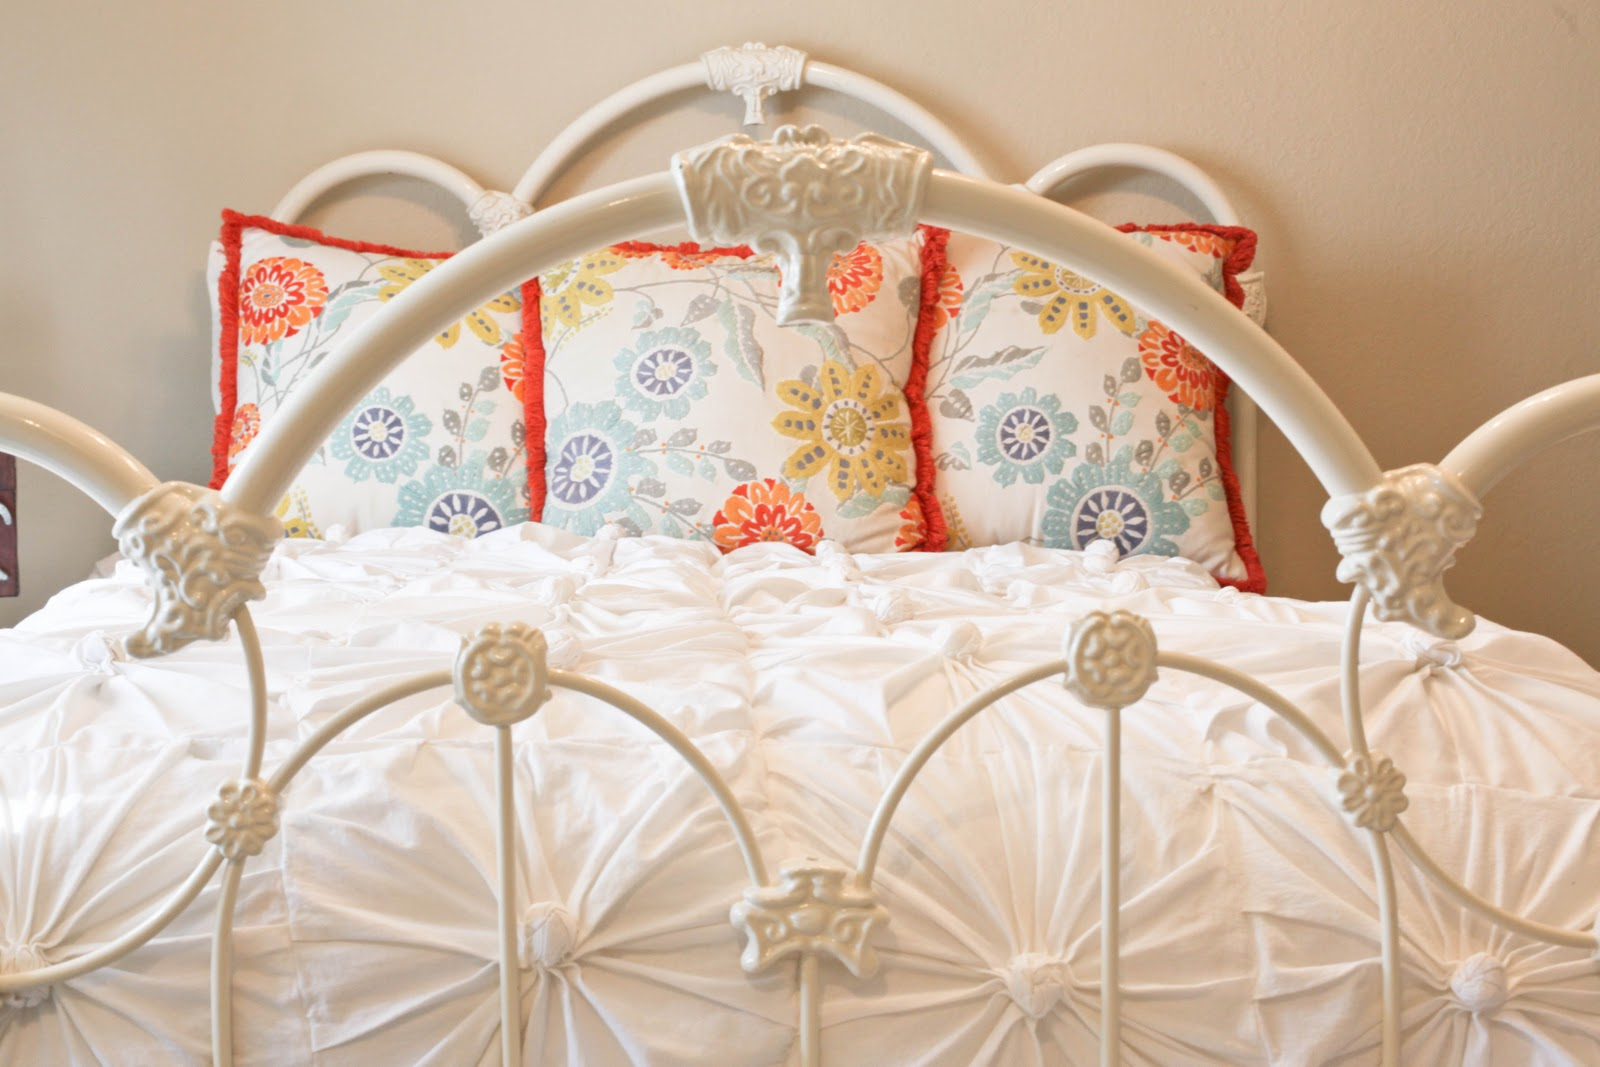 Anthropologie bedding - Anthropologie Inspired Knotted Bedding Part 1 Making The Knotted Squares